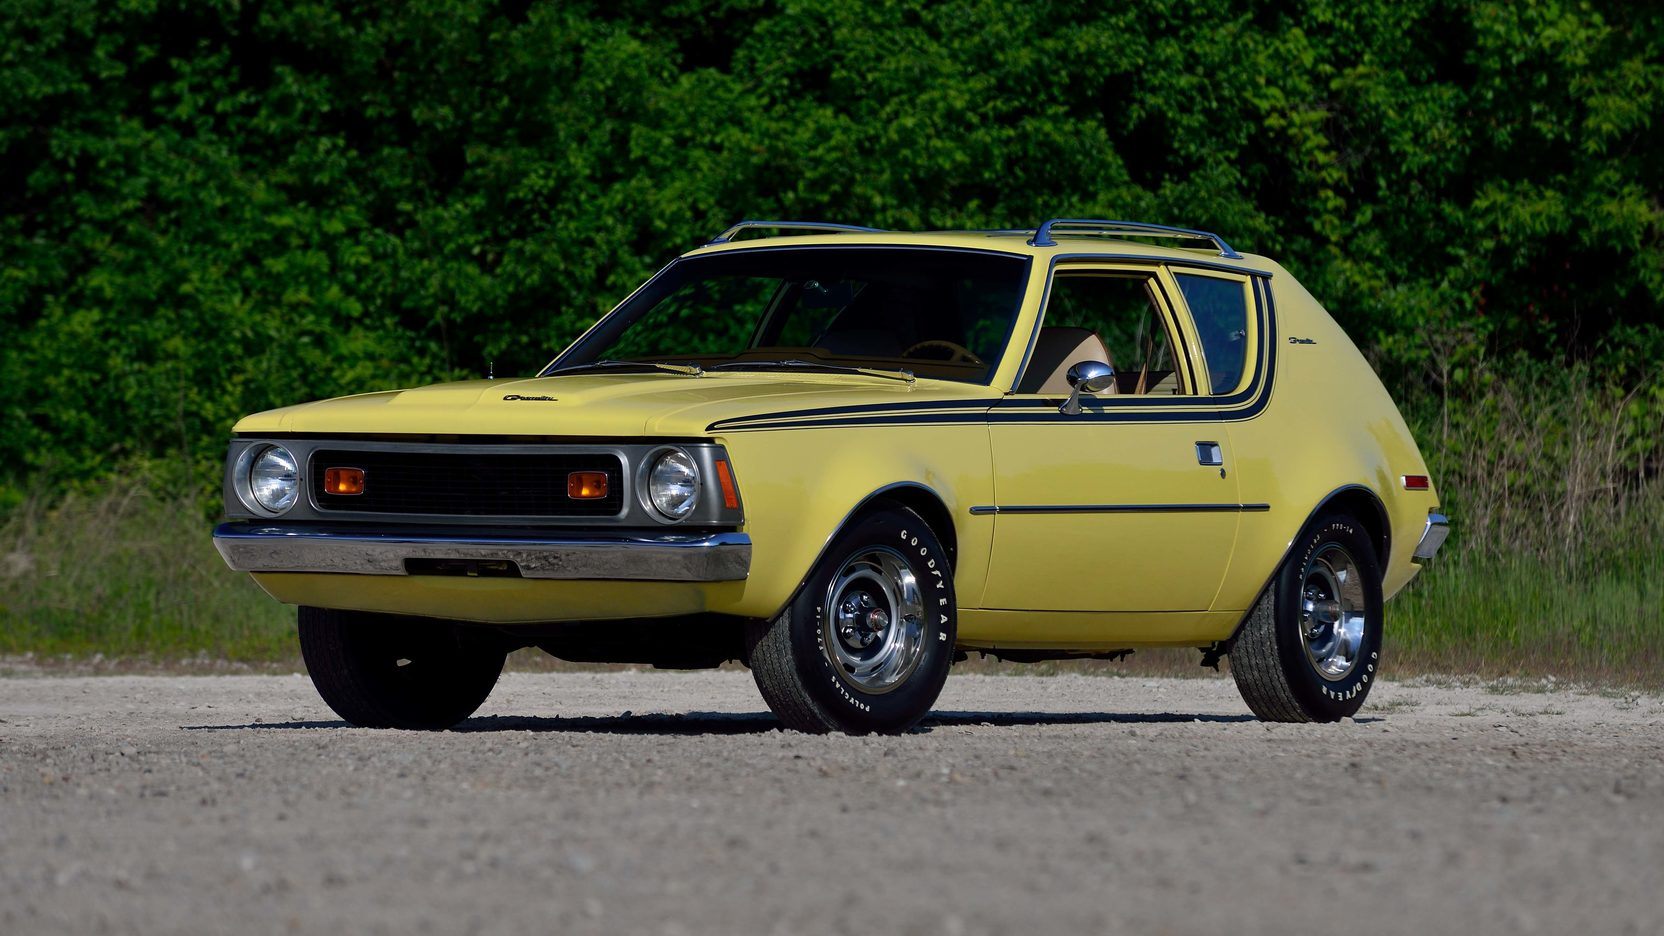 The much-maligned AMC Gremlin is gaining legitimacy as a collector car |  Hagerty Media